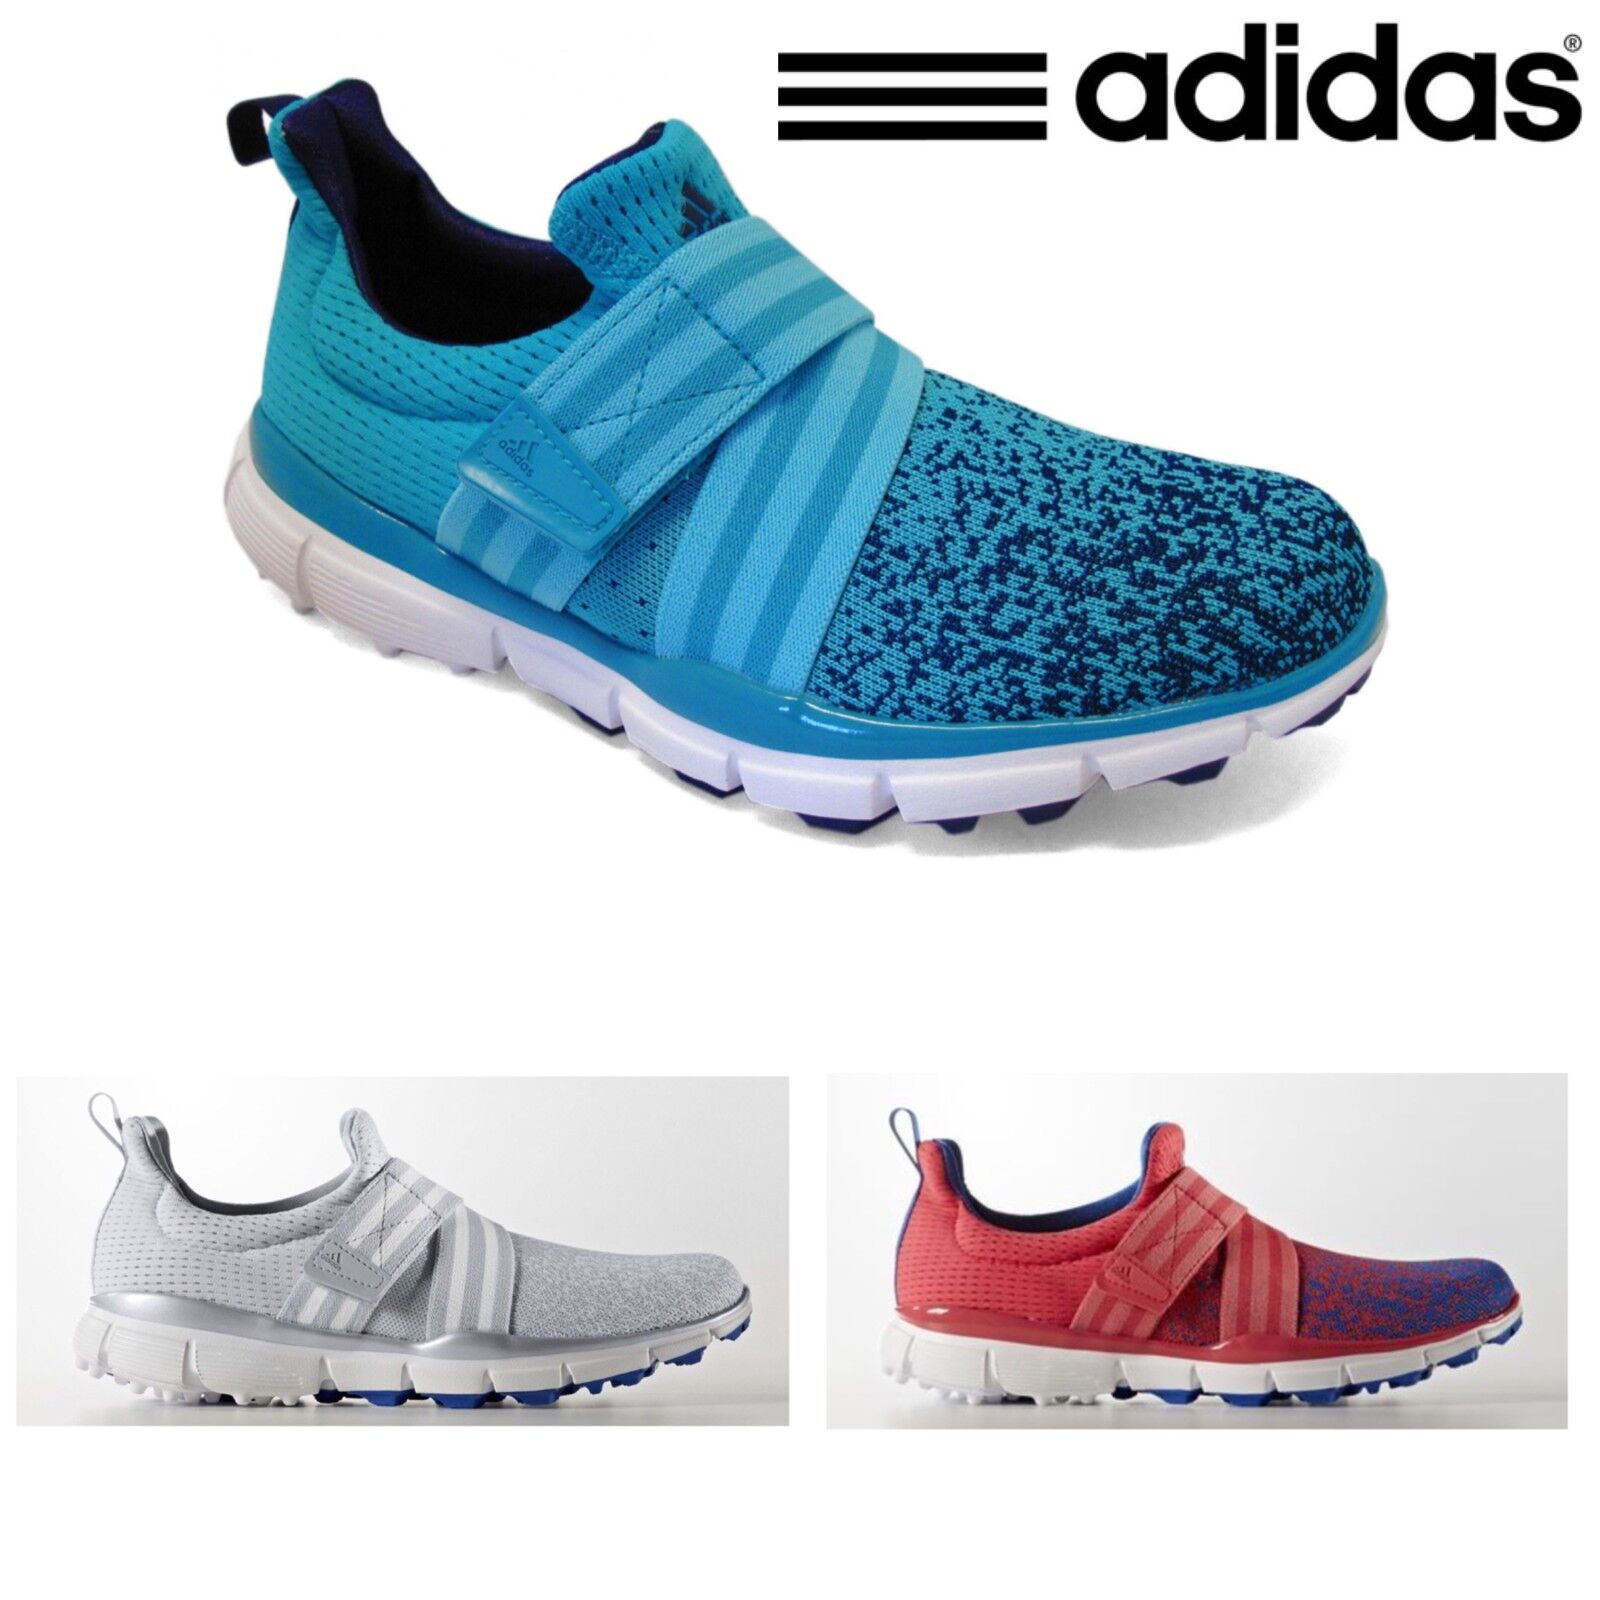 buy popular 511e7 11fec adidas Golf 2017 Womens Climacool knit Light weight Ladies Golf Shoes  Trainer